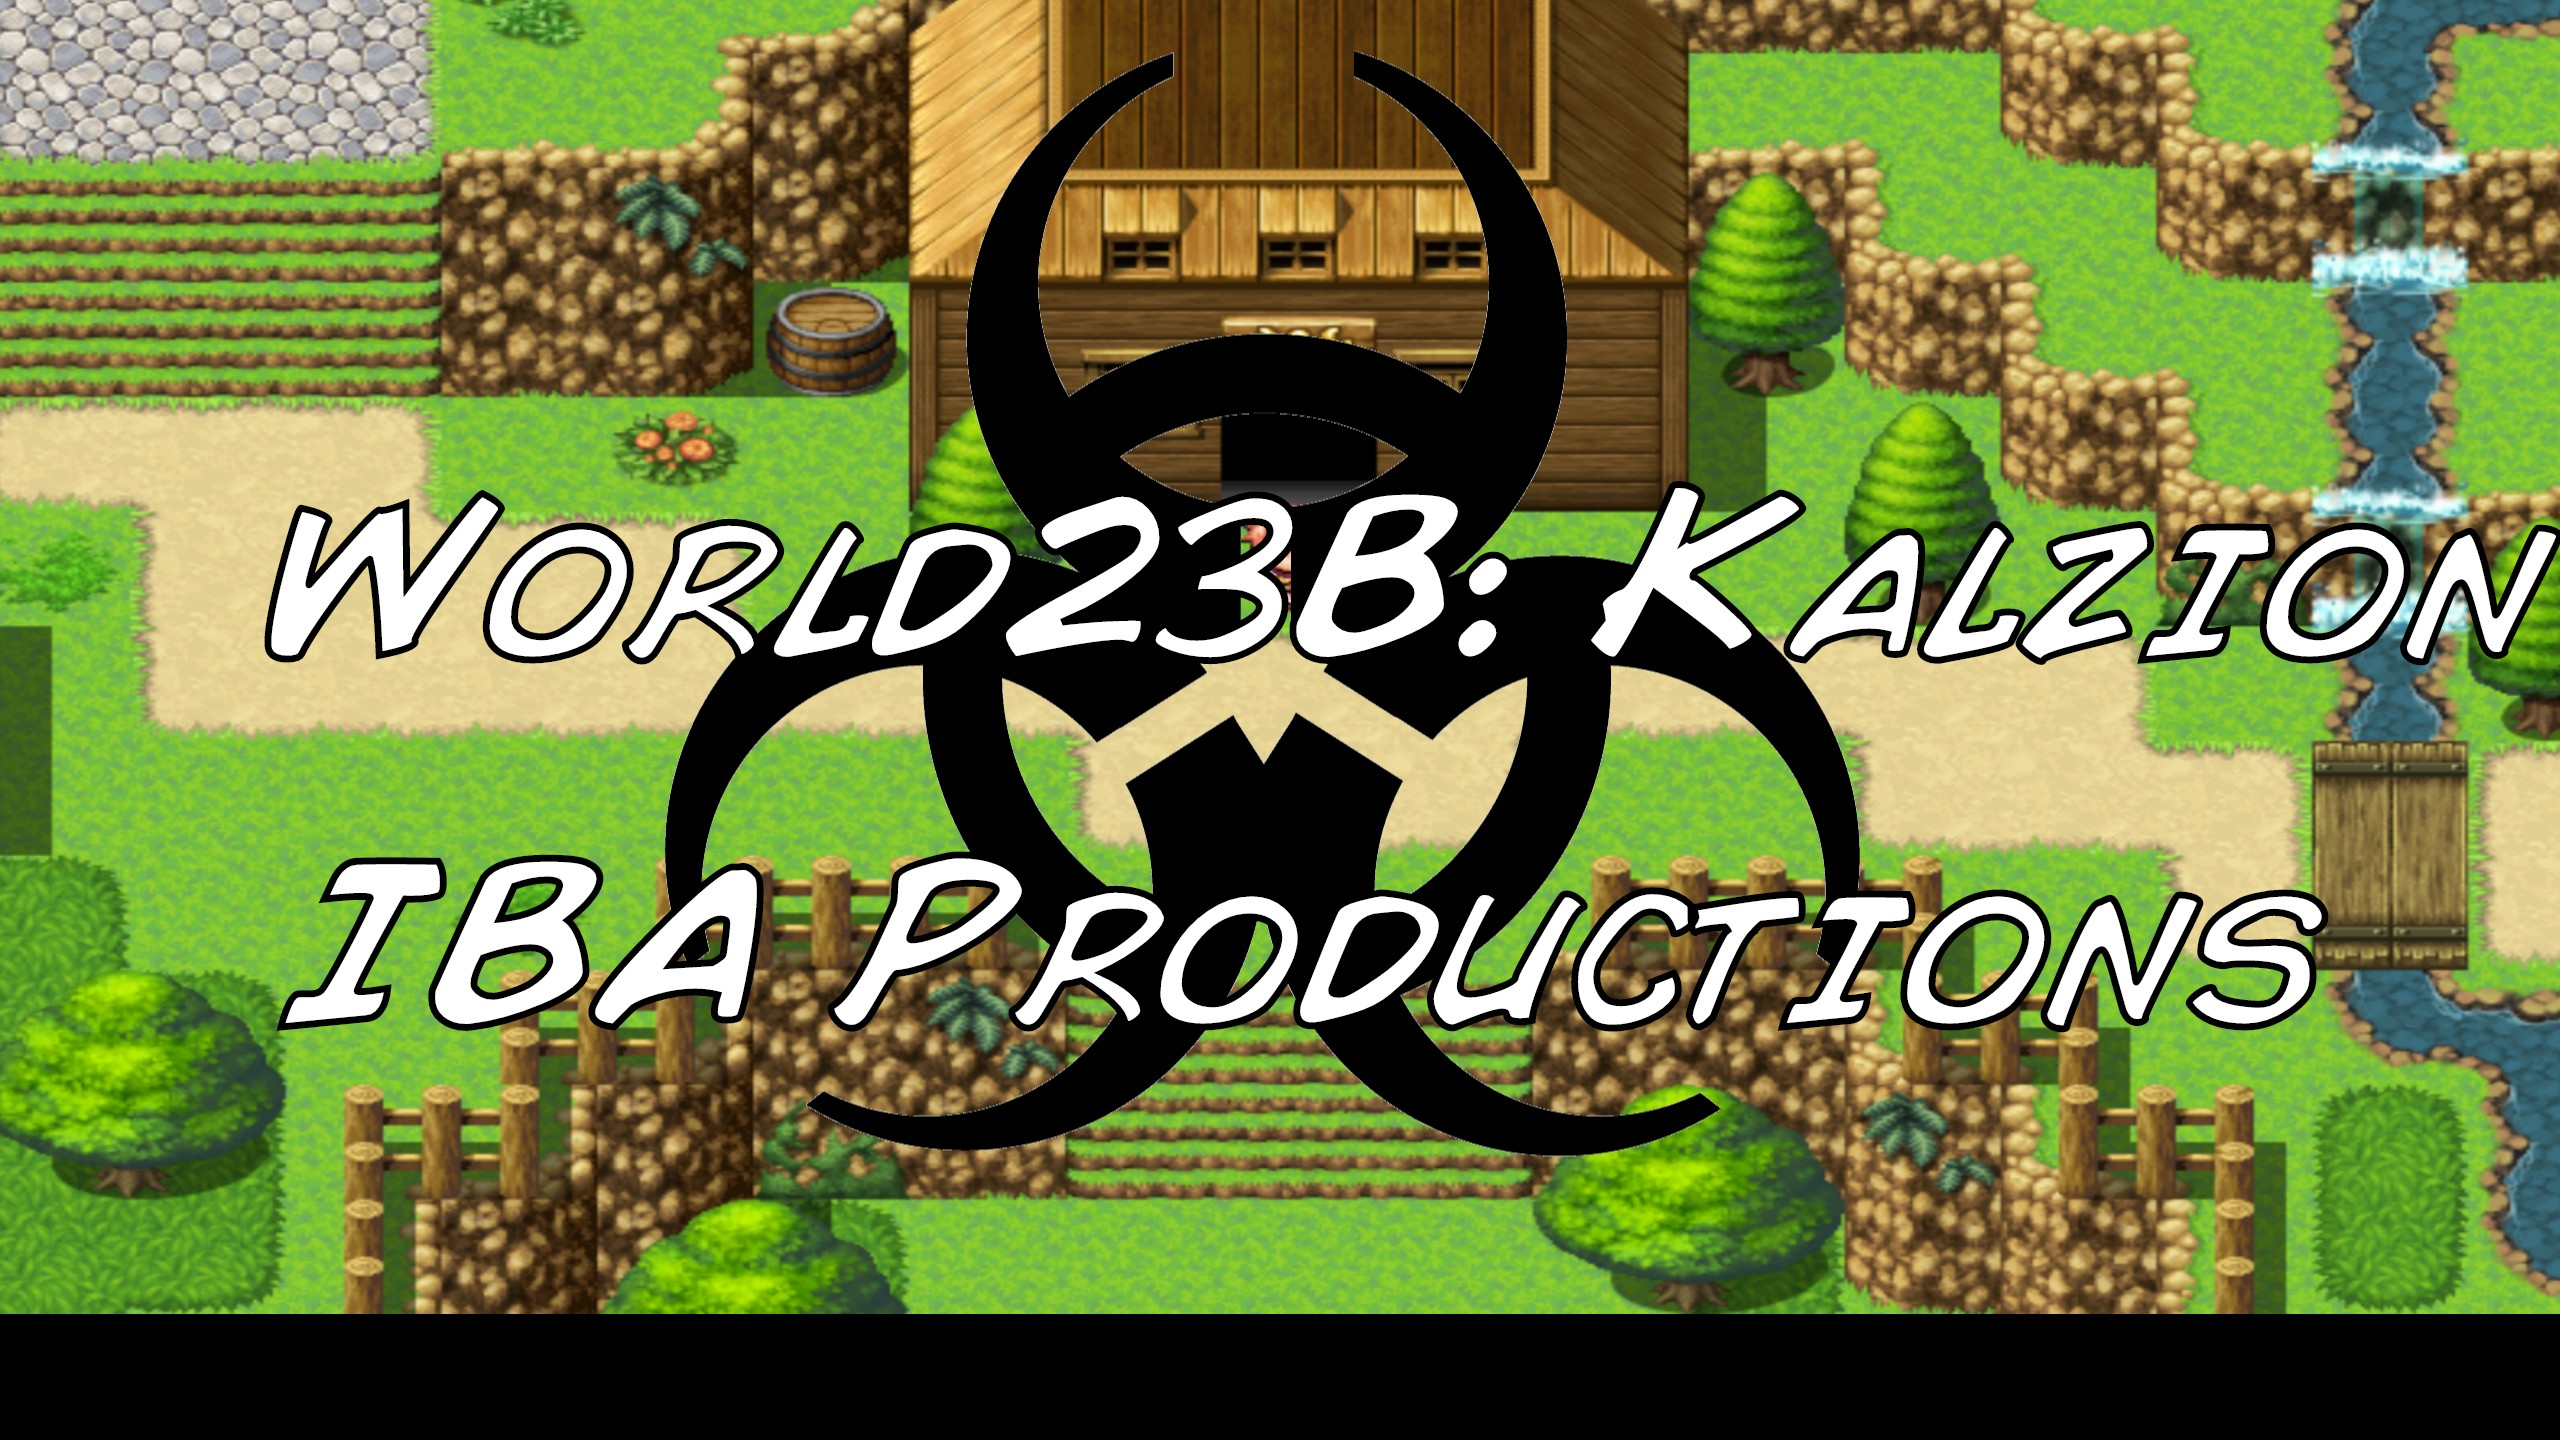 World23B: Kalzion v0.1 Alpha (WIP Price will go up)